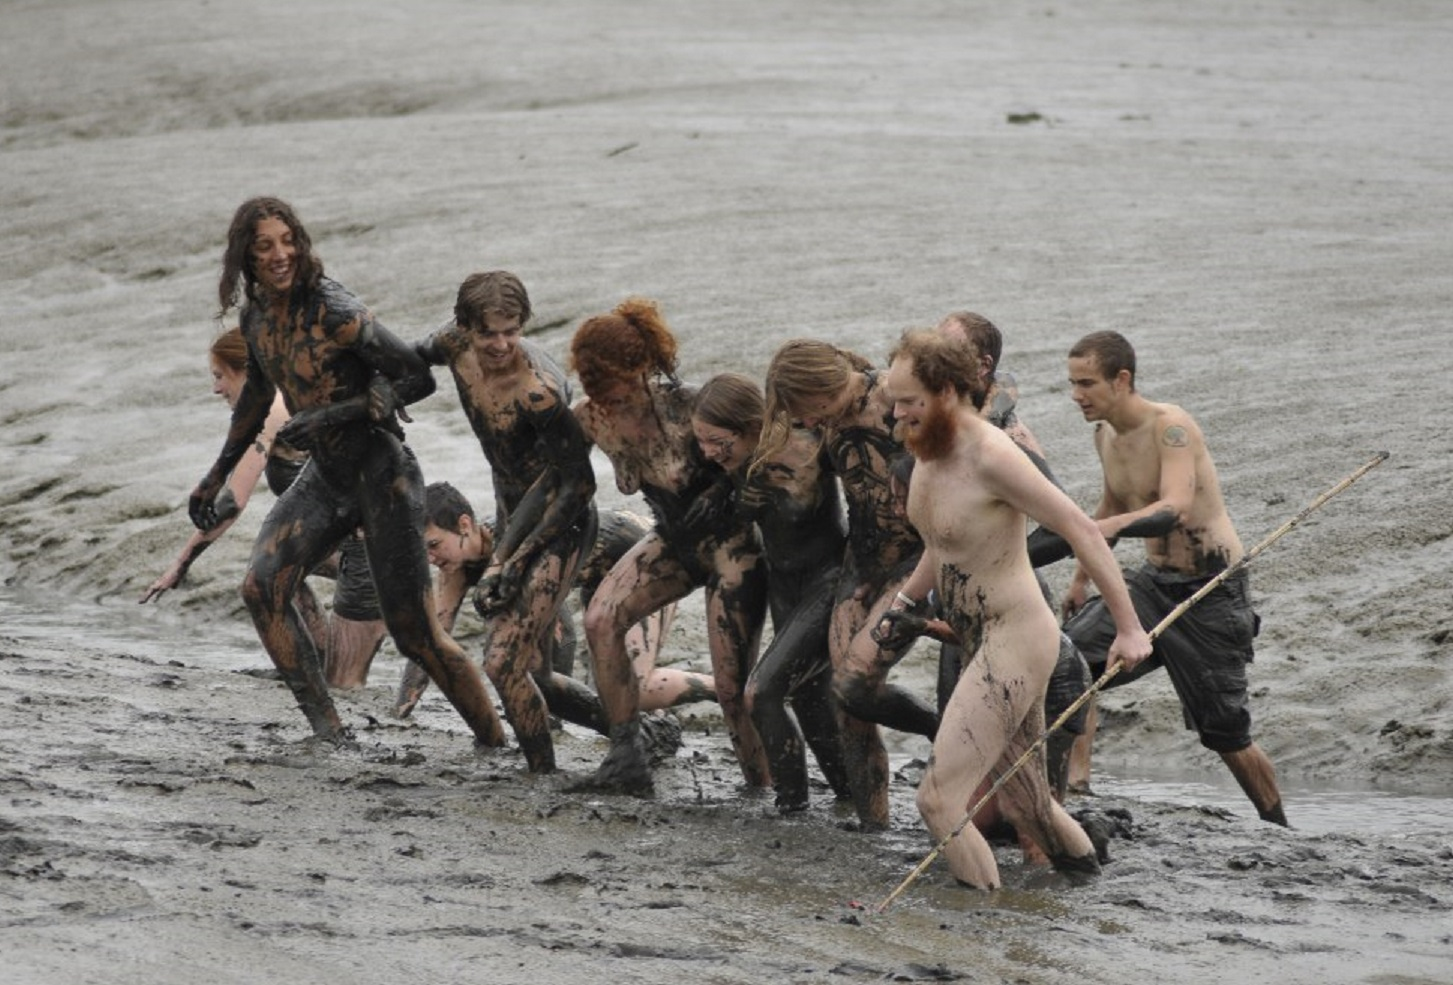 Old woman mud run nudity piercing